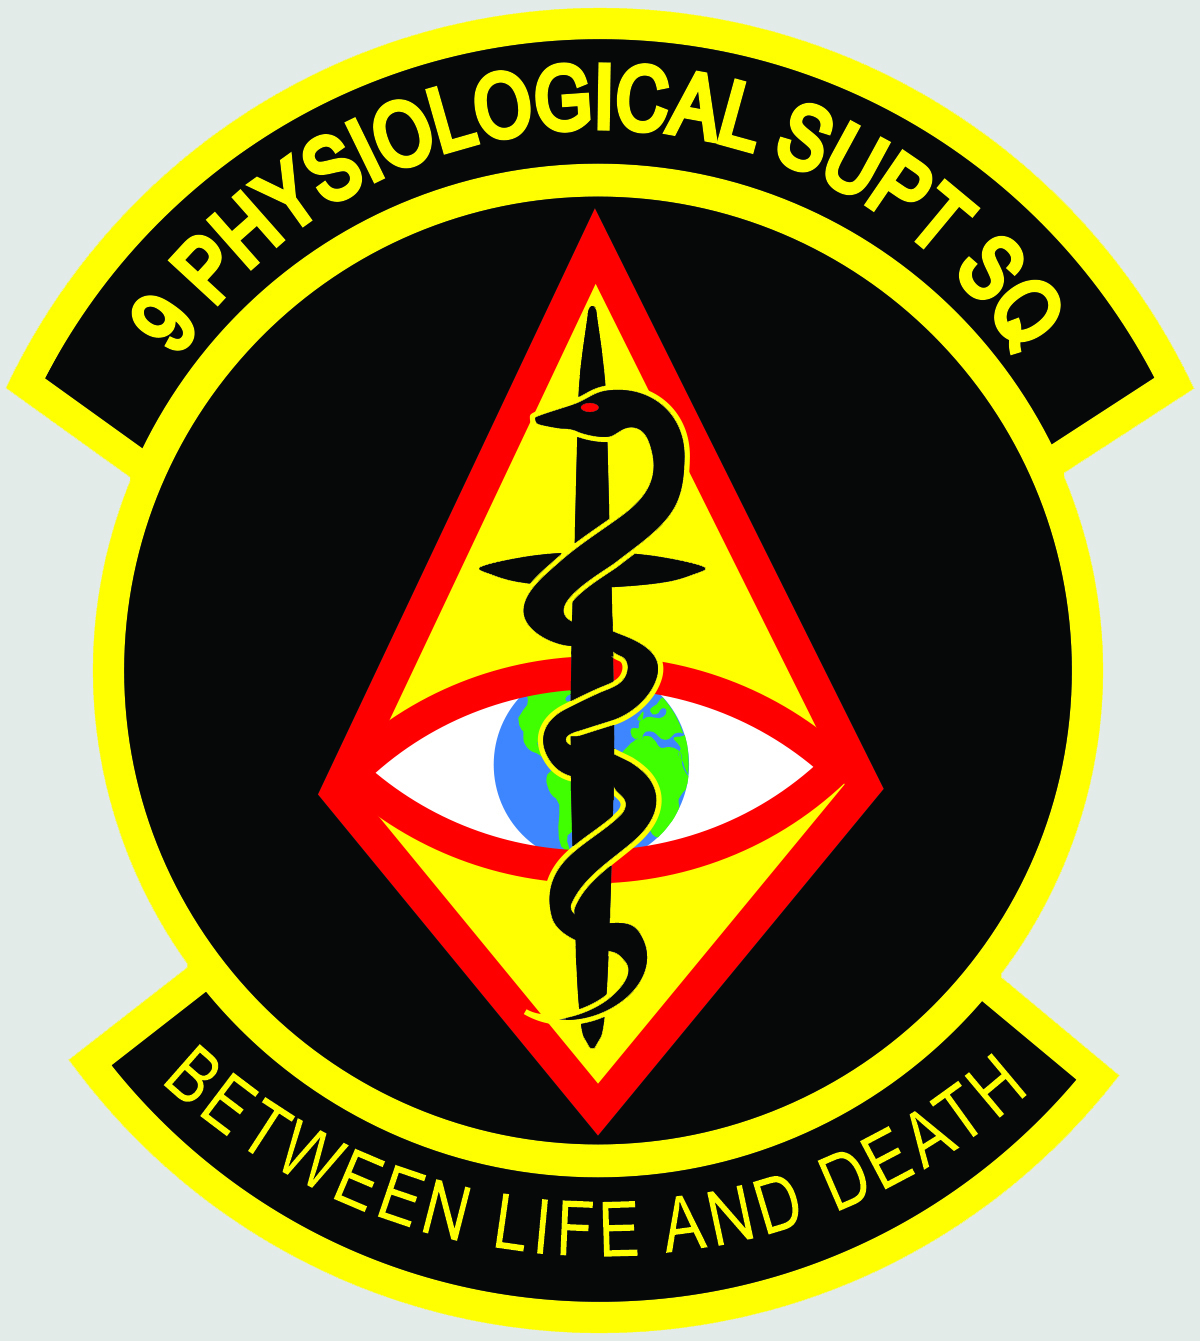 9th Physiological Support Squadron